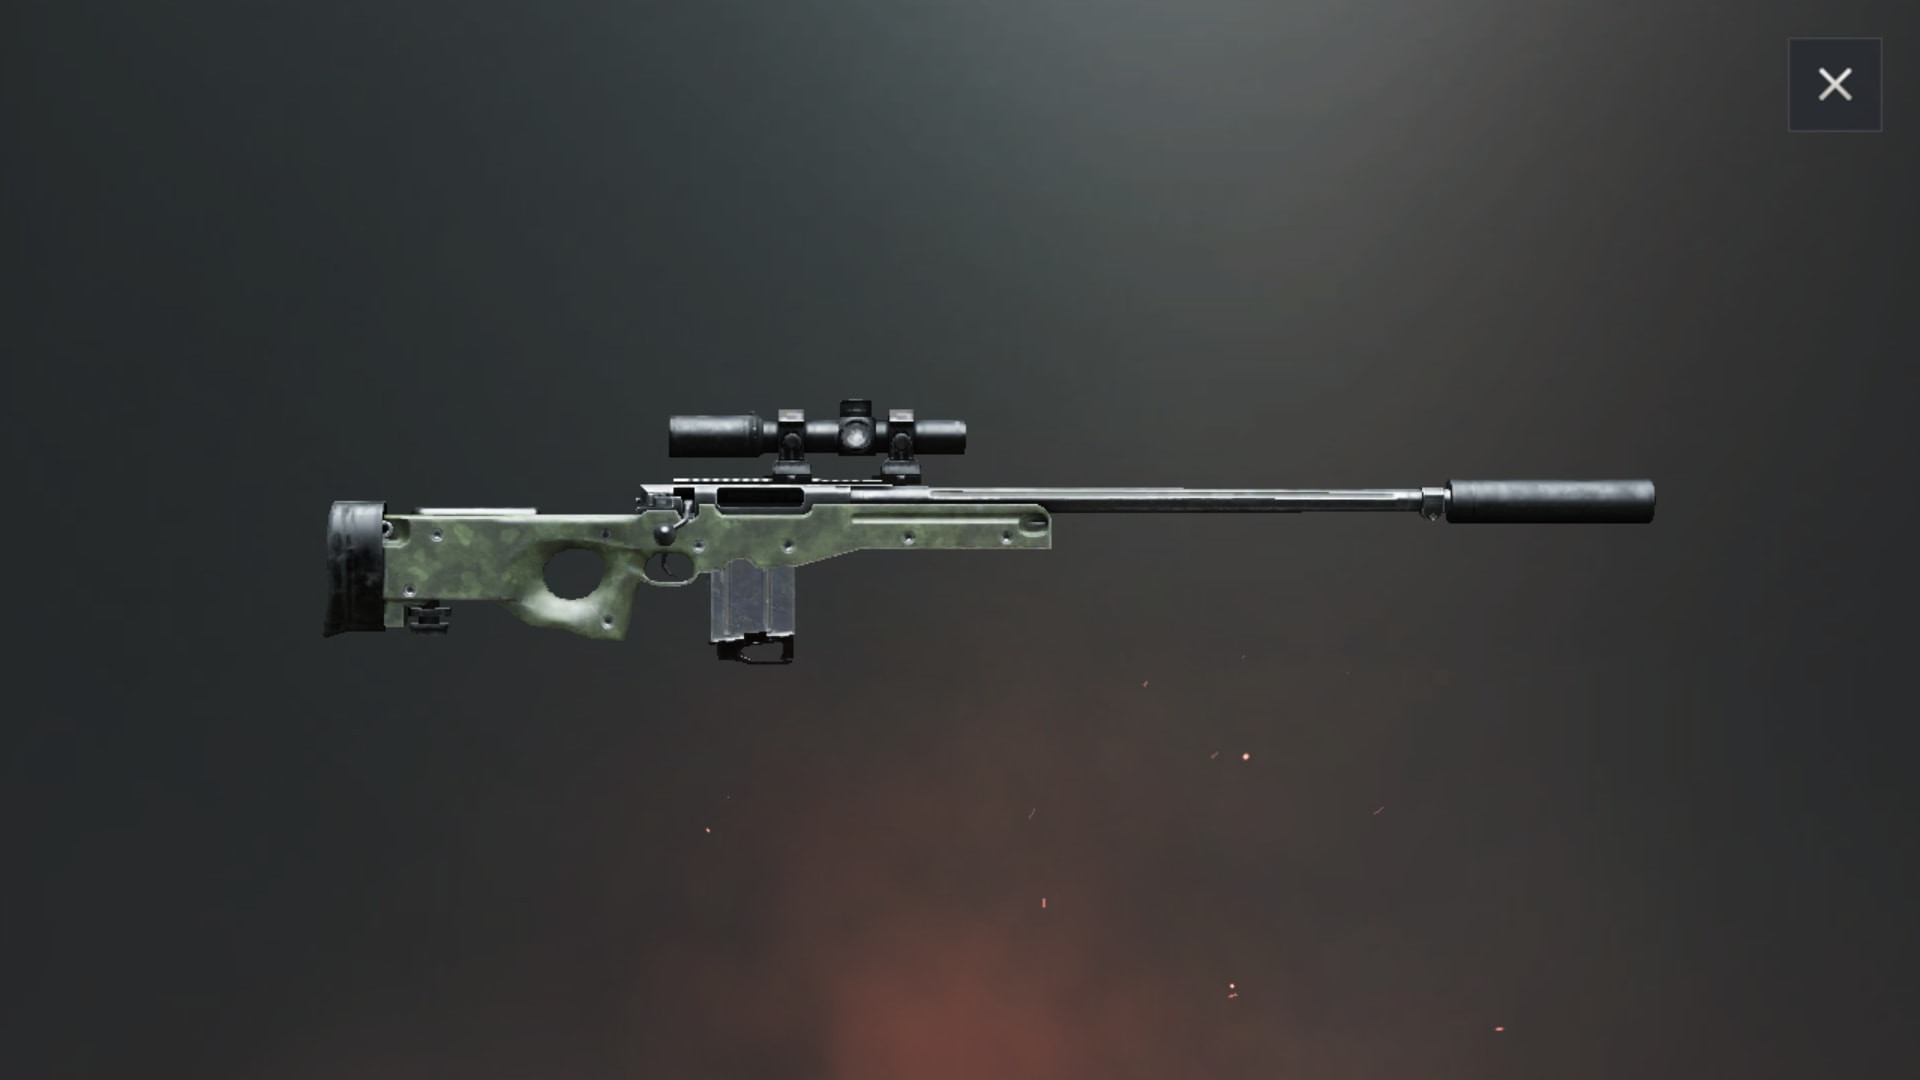 Top 5 Sniper Rifles In Pubg Check Damage Range Recoil And Hit Rate